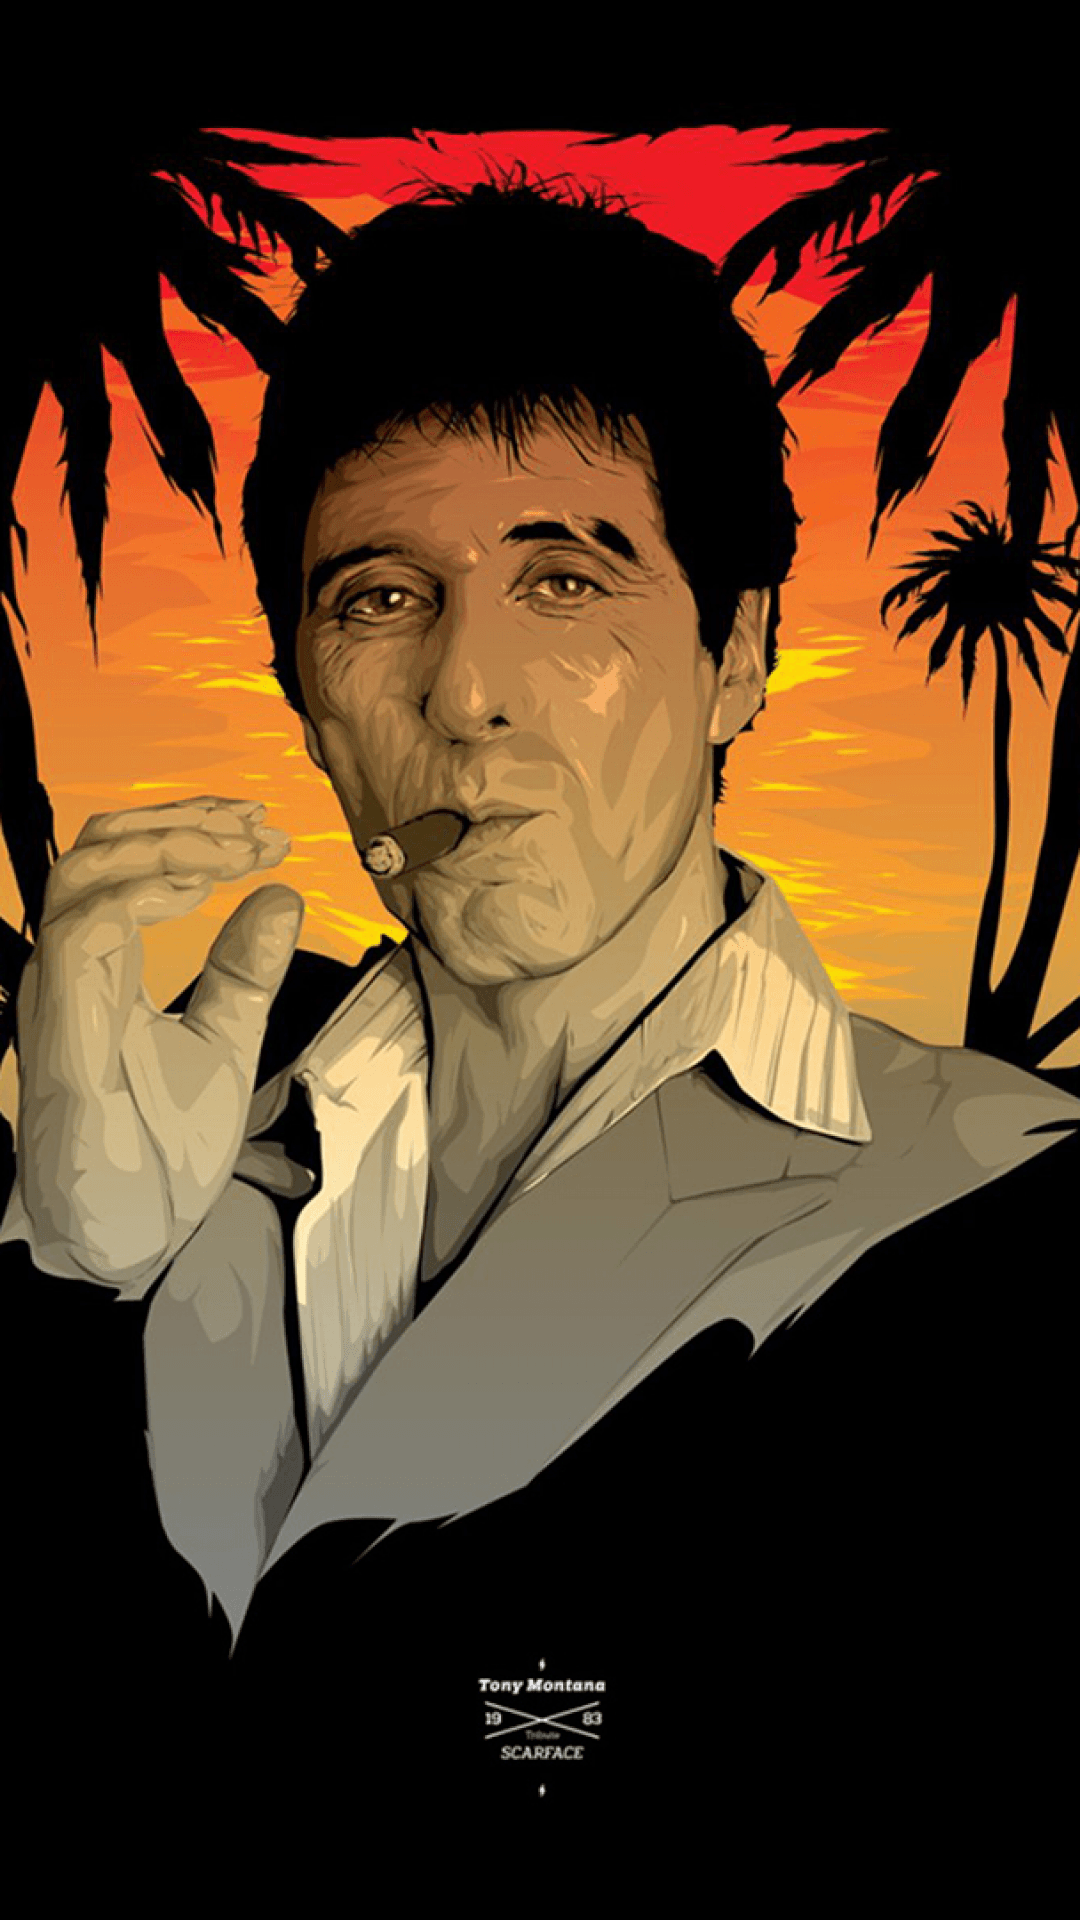 Scarface sitting wallpapers top free scarface sitting - Scarface background ...